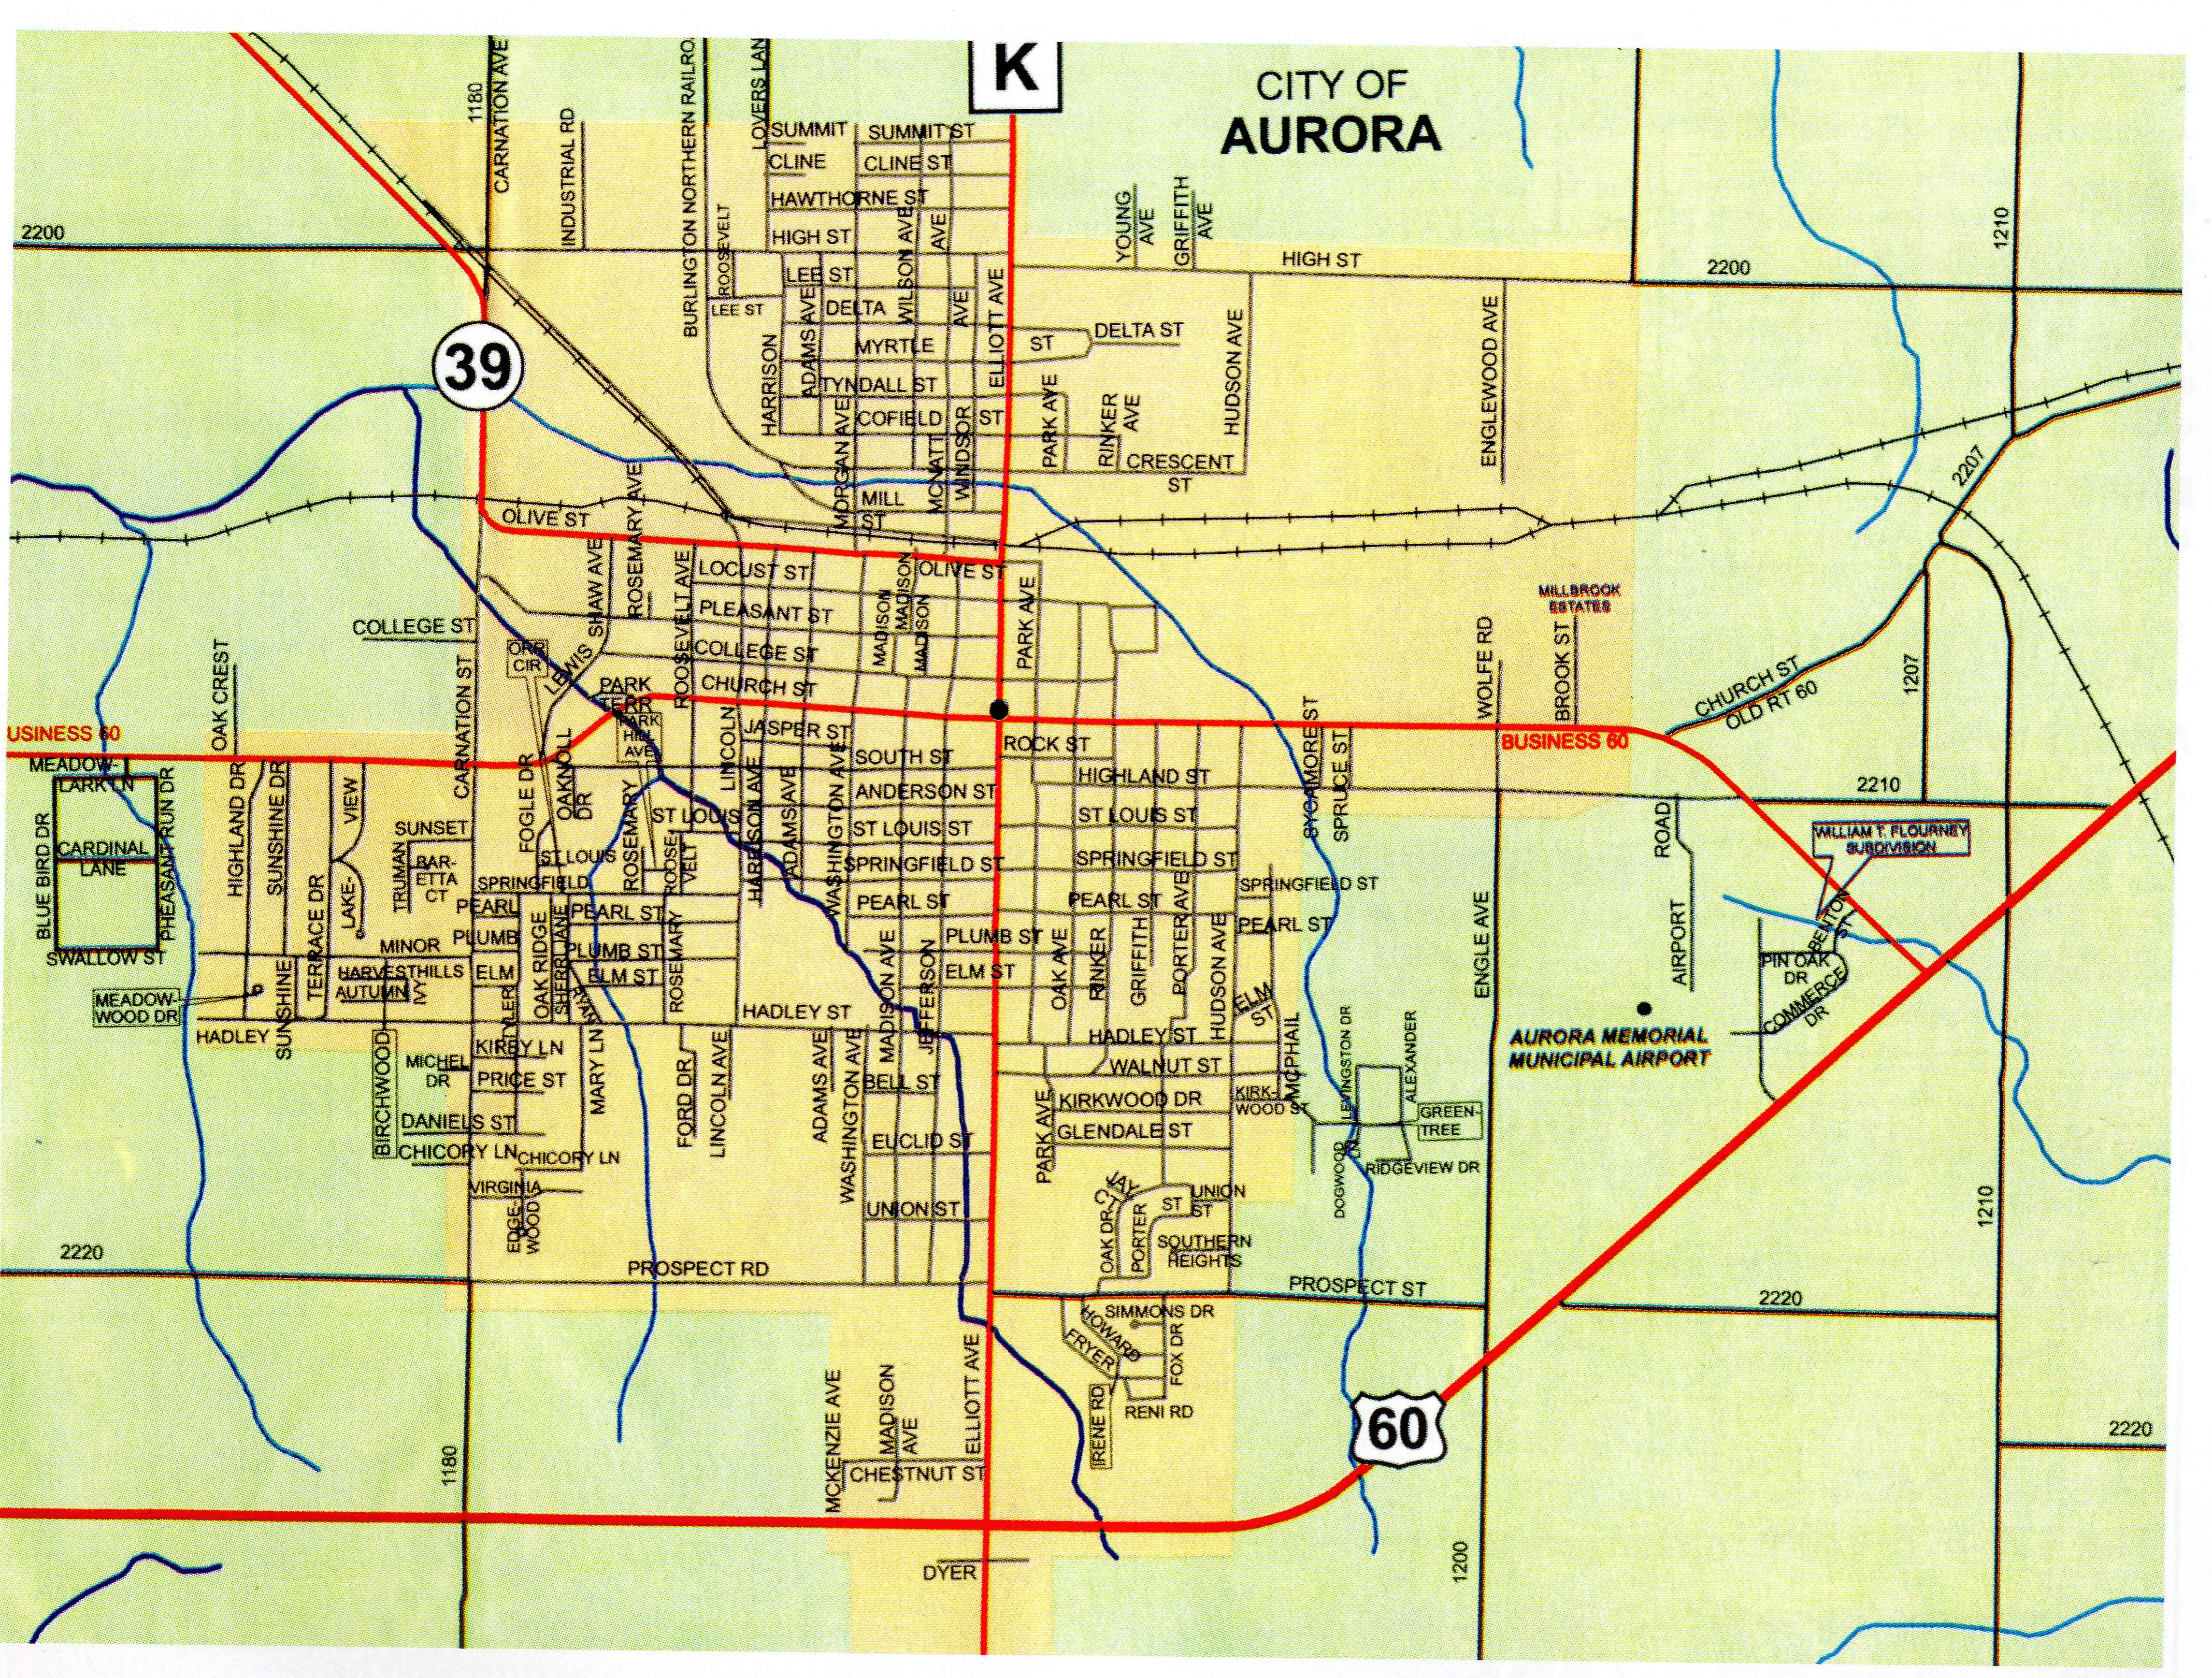 The map of Aurora lifted from the Aurora, Missouri, Chamber of Commerce 2011-2012 Community Profile & Business Directory